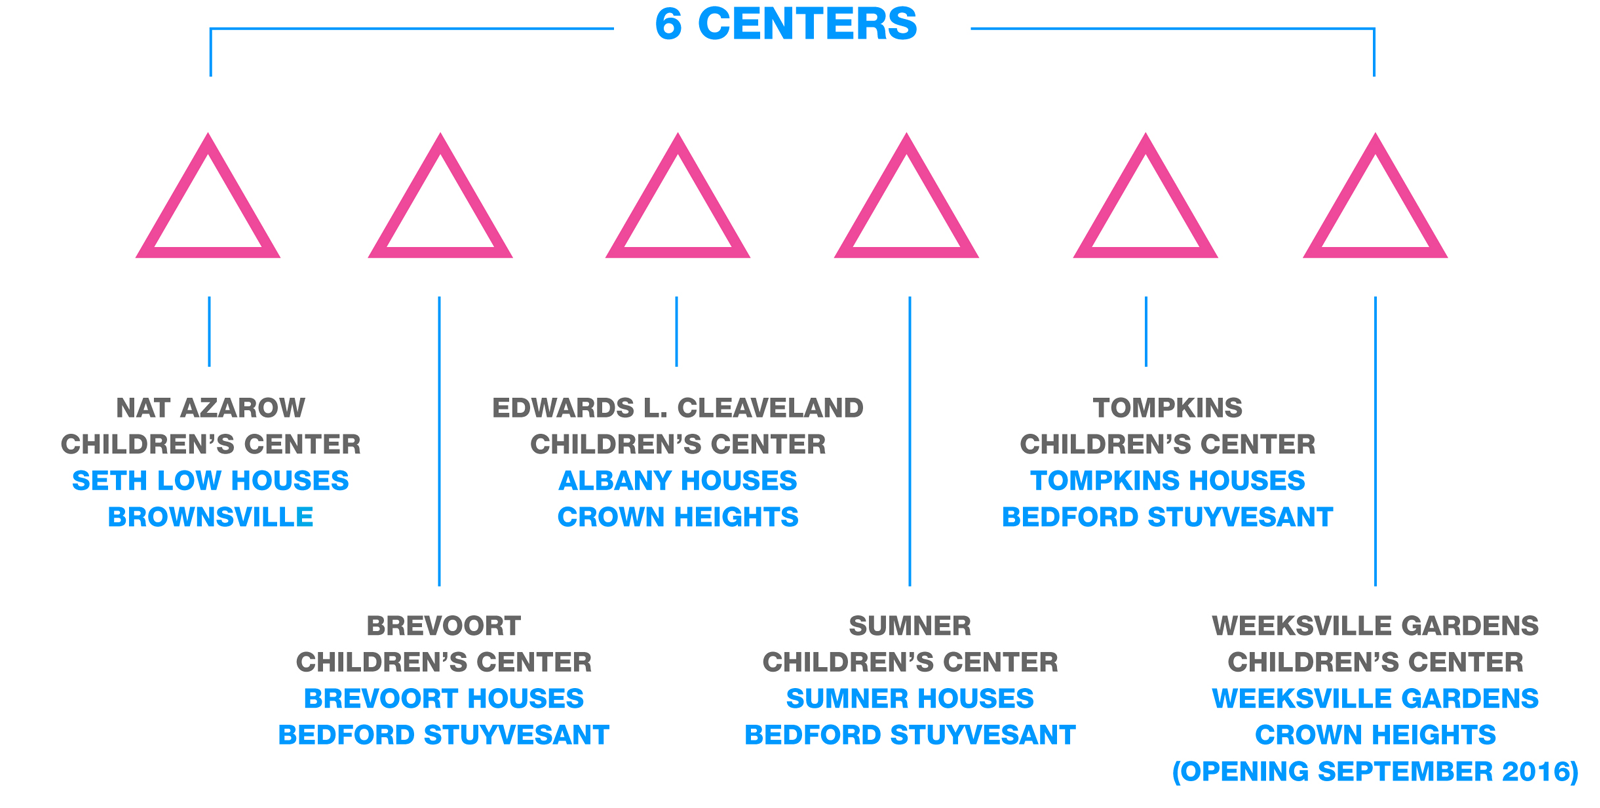 6-centers